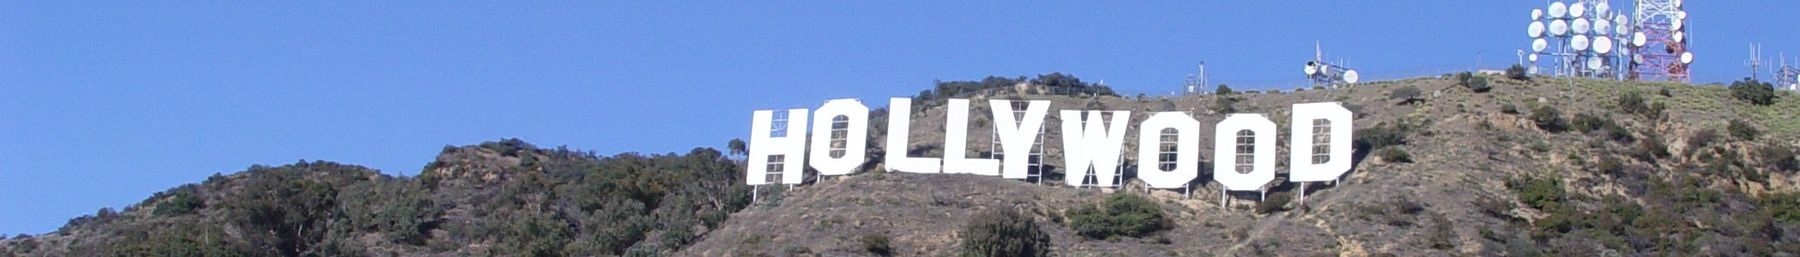 Hollywood wikivoyage banners.jpg